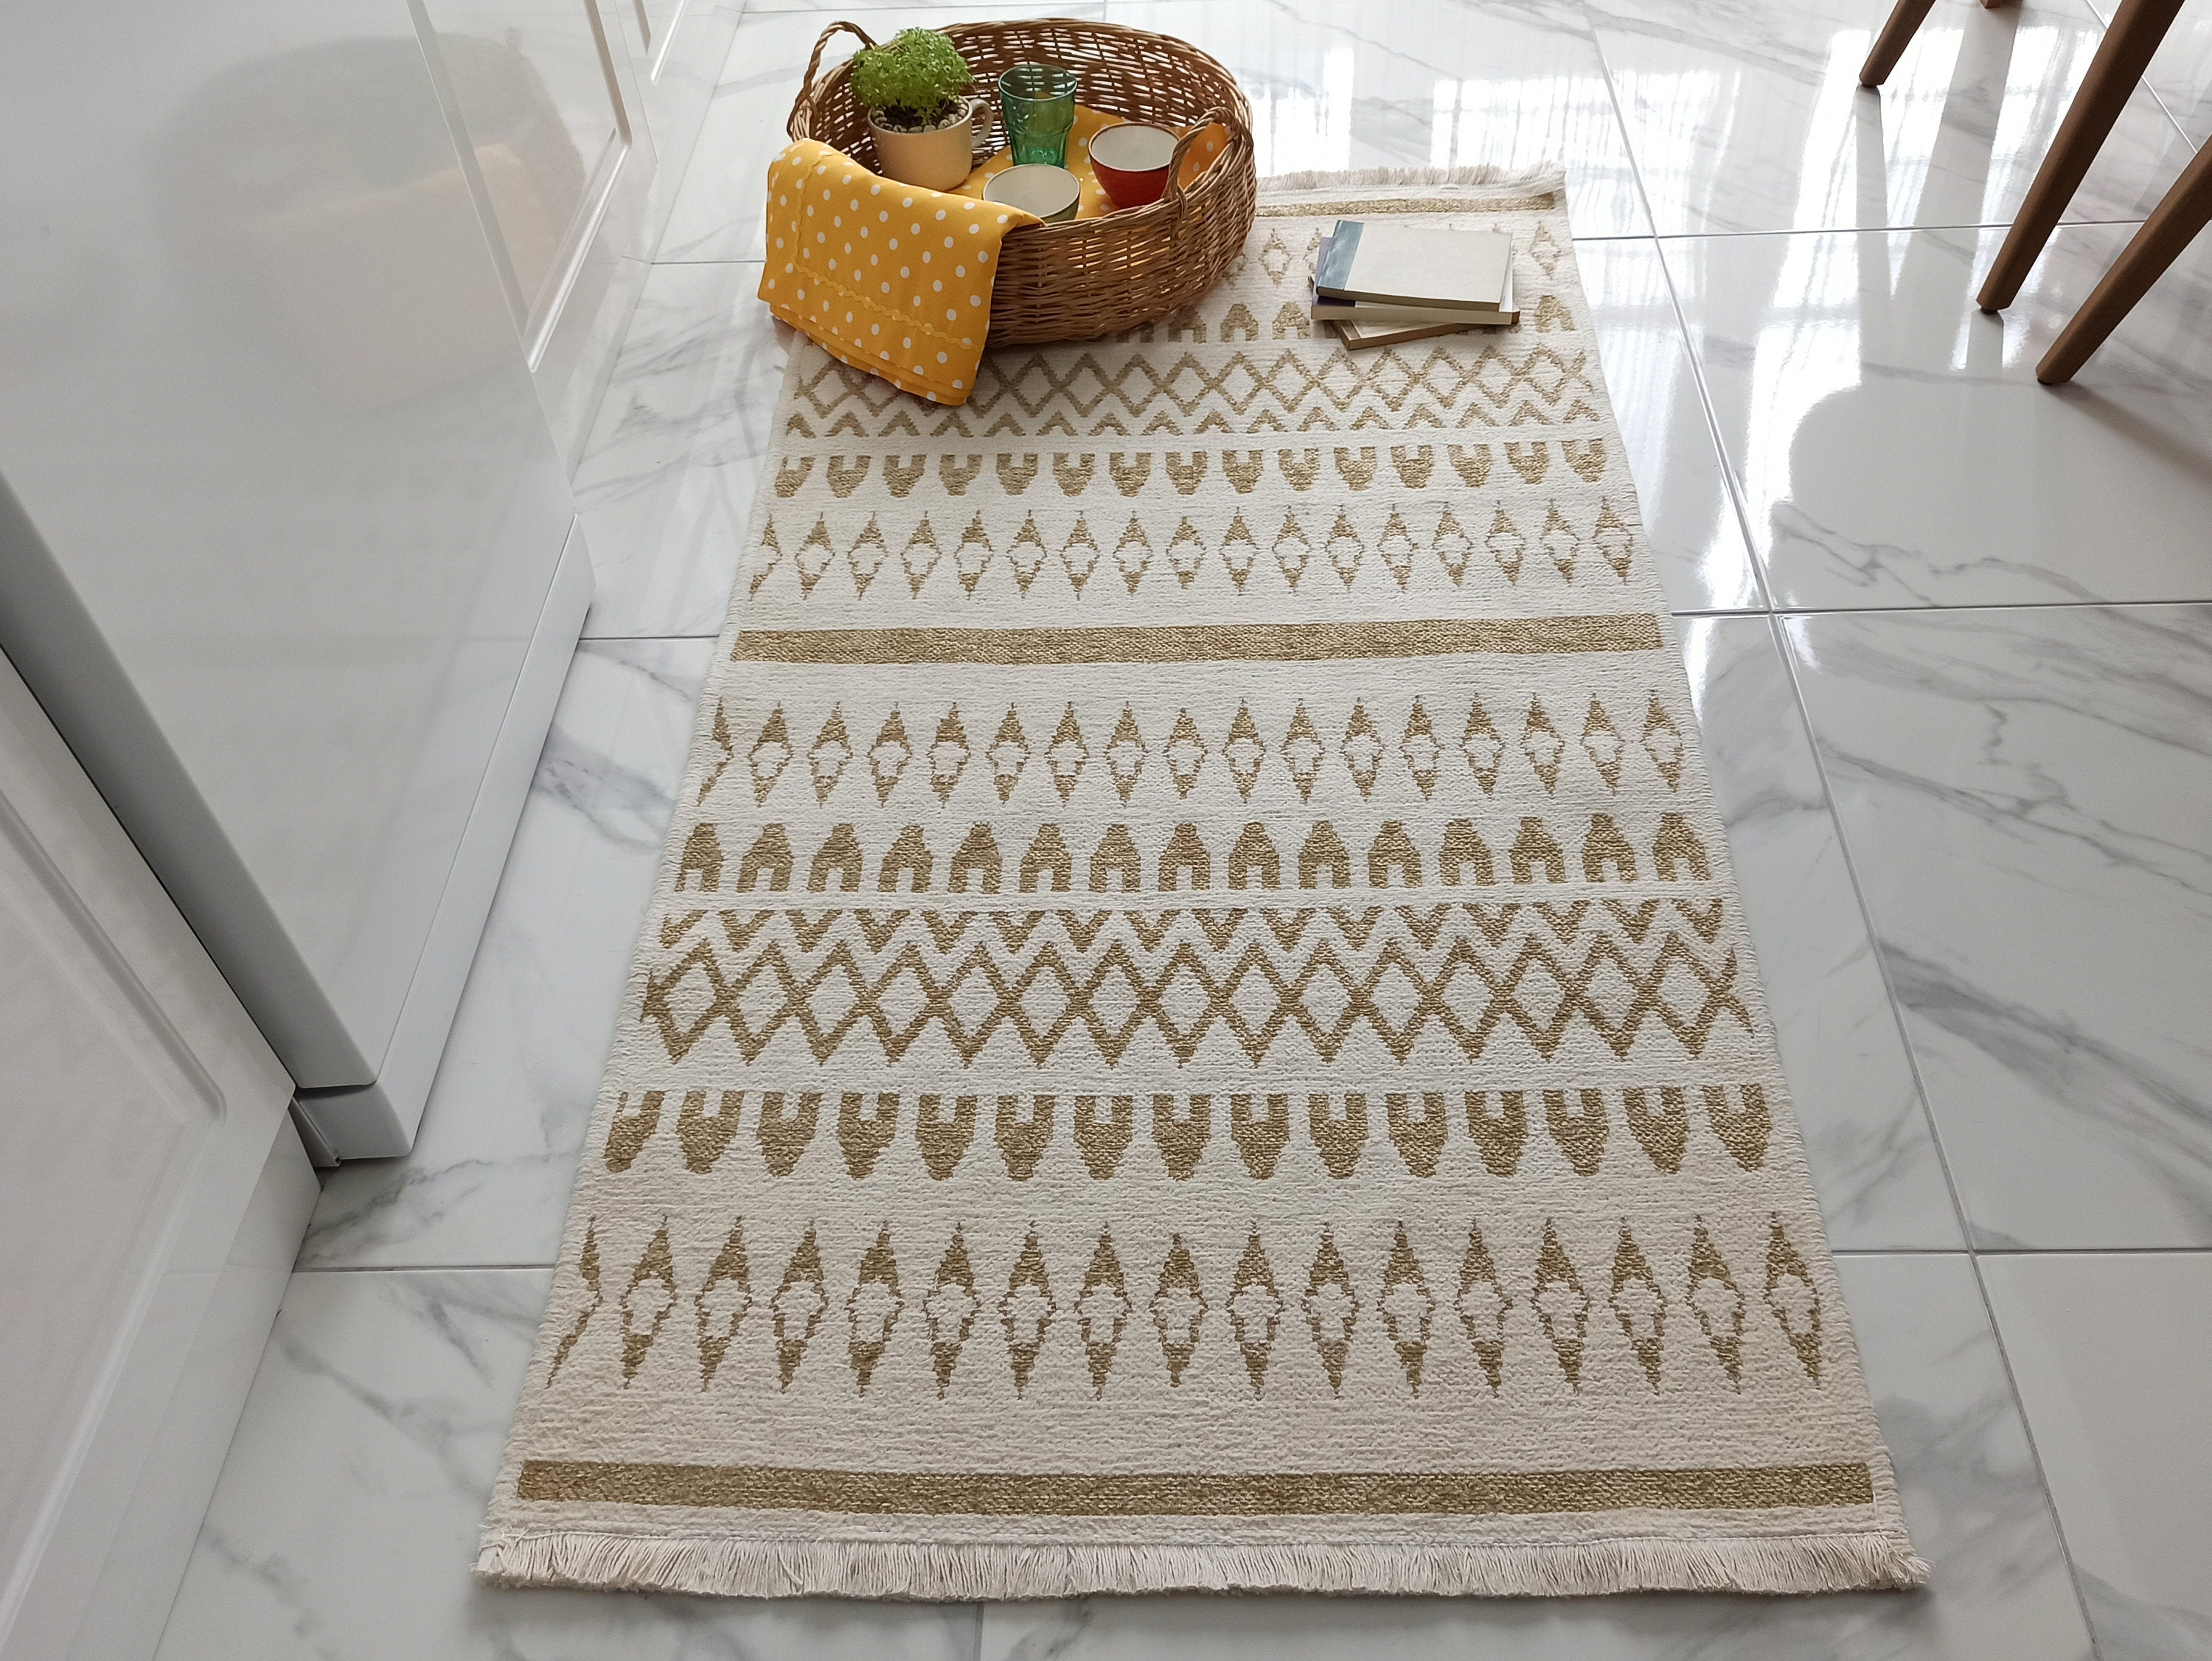 NEU RUNNER | Washable Kilim Rug, Revesible Flatweave Soft, Pastel Modern Turkish Kilim Runner, White Beige Neutral Throw rug, Double Sided